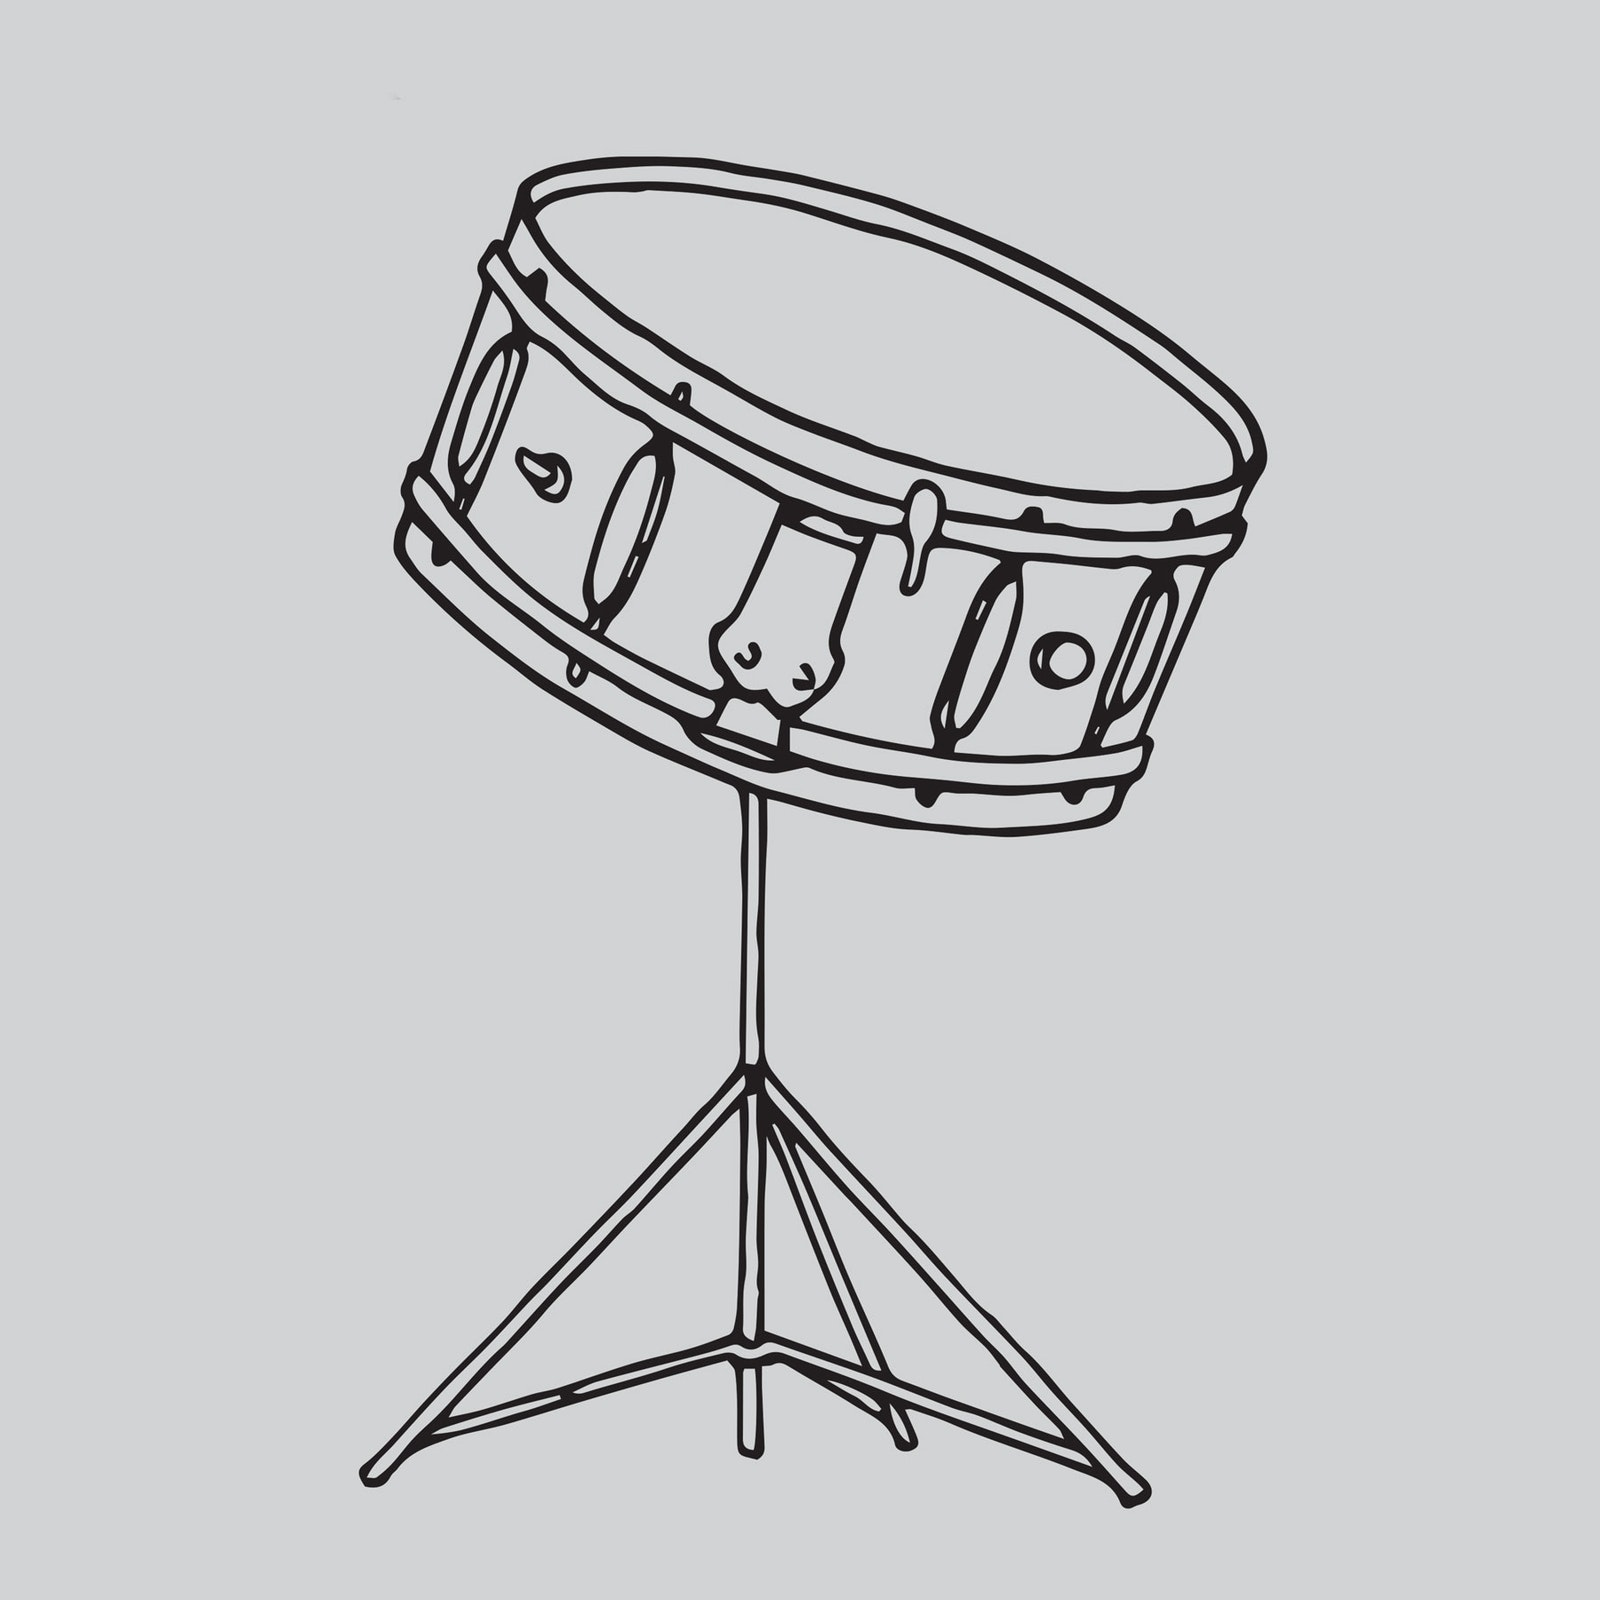 SNARE DRUM OUTLINE